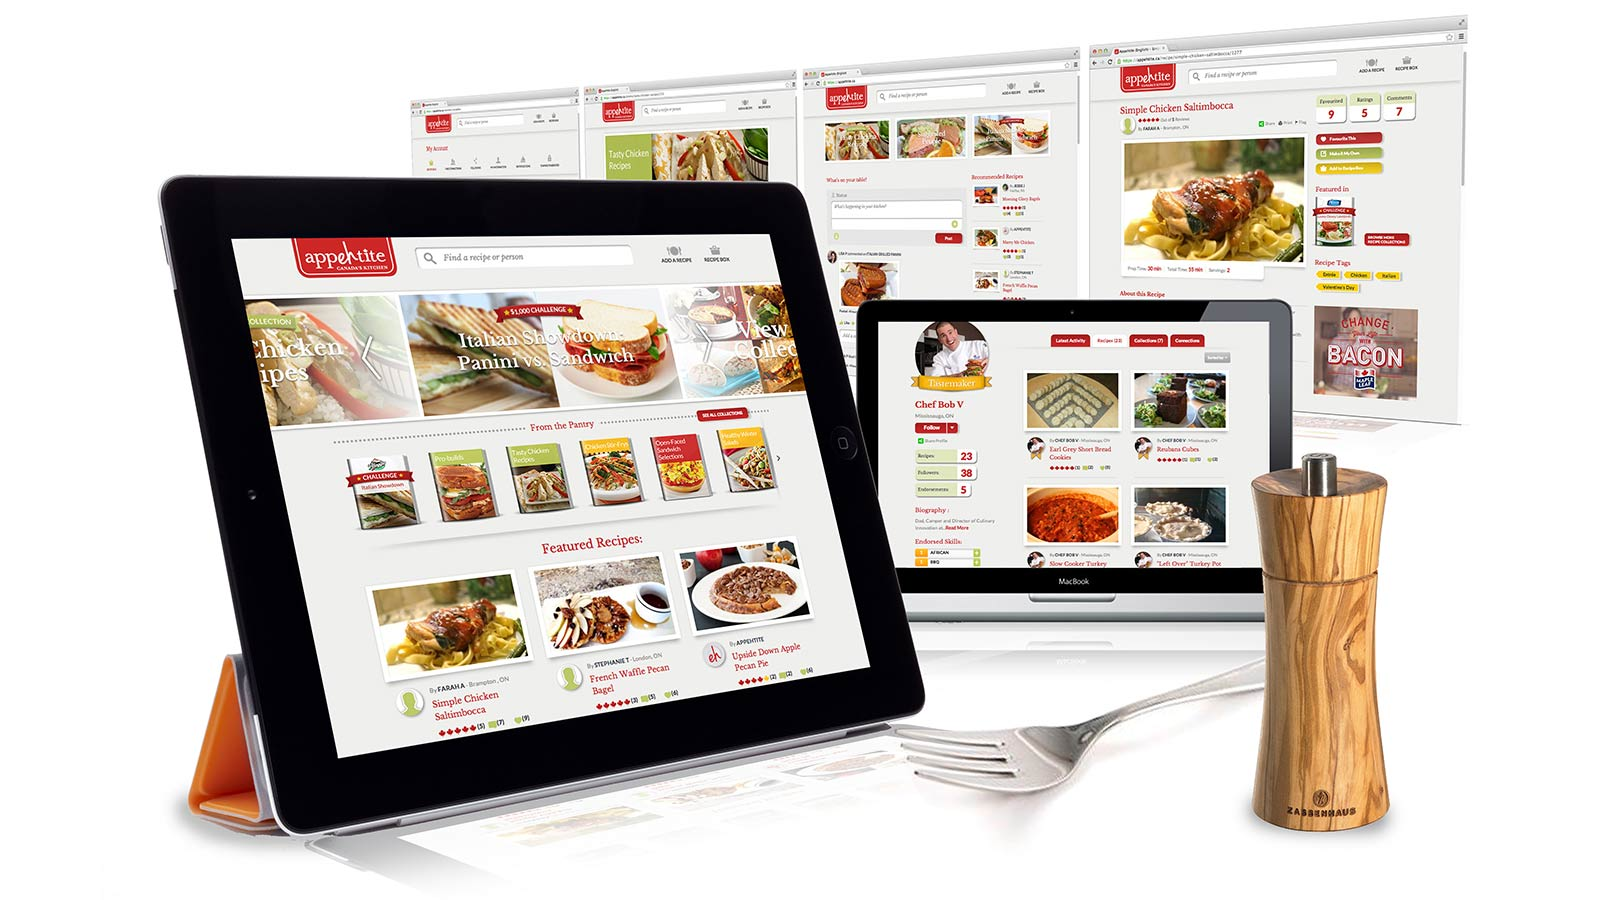 Dempster's | Social Media Recipe Hub | App Development, Digital Innovation, Digital Marketing, Mobile, Responsive Design